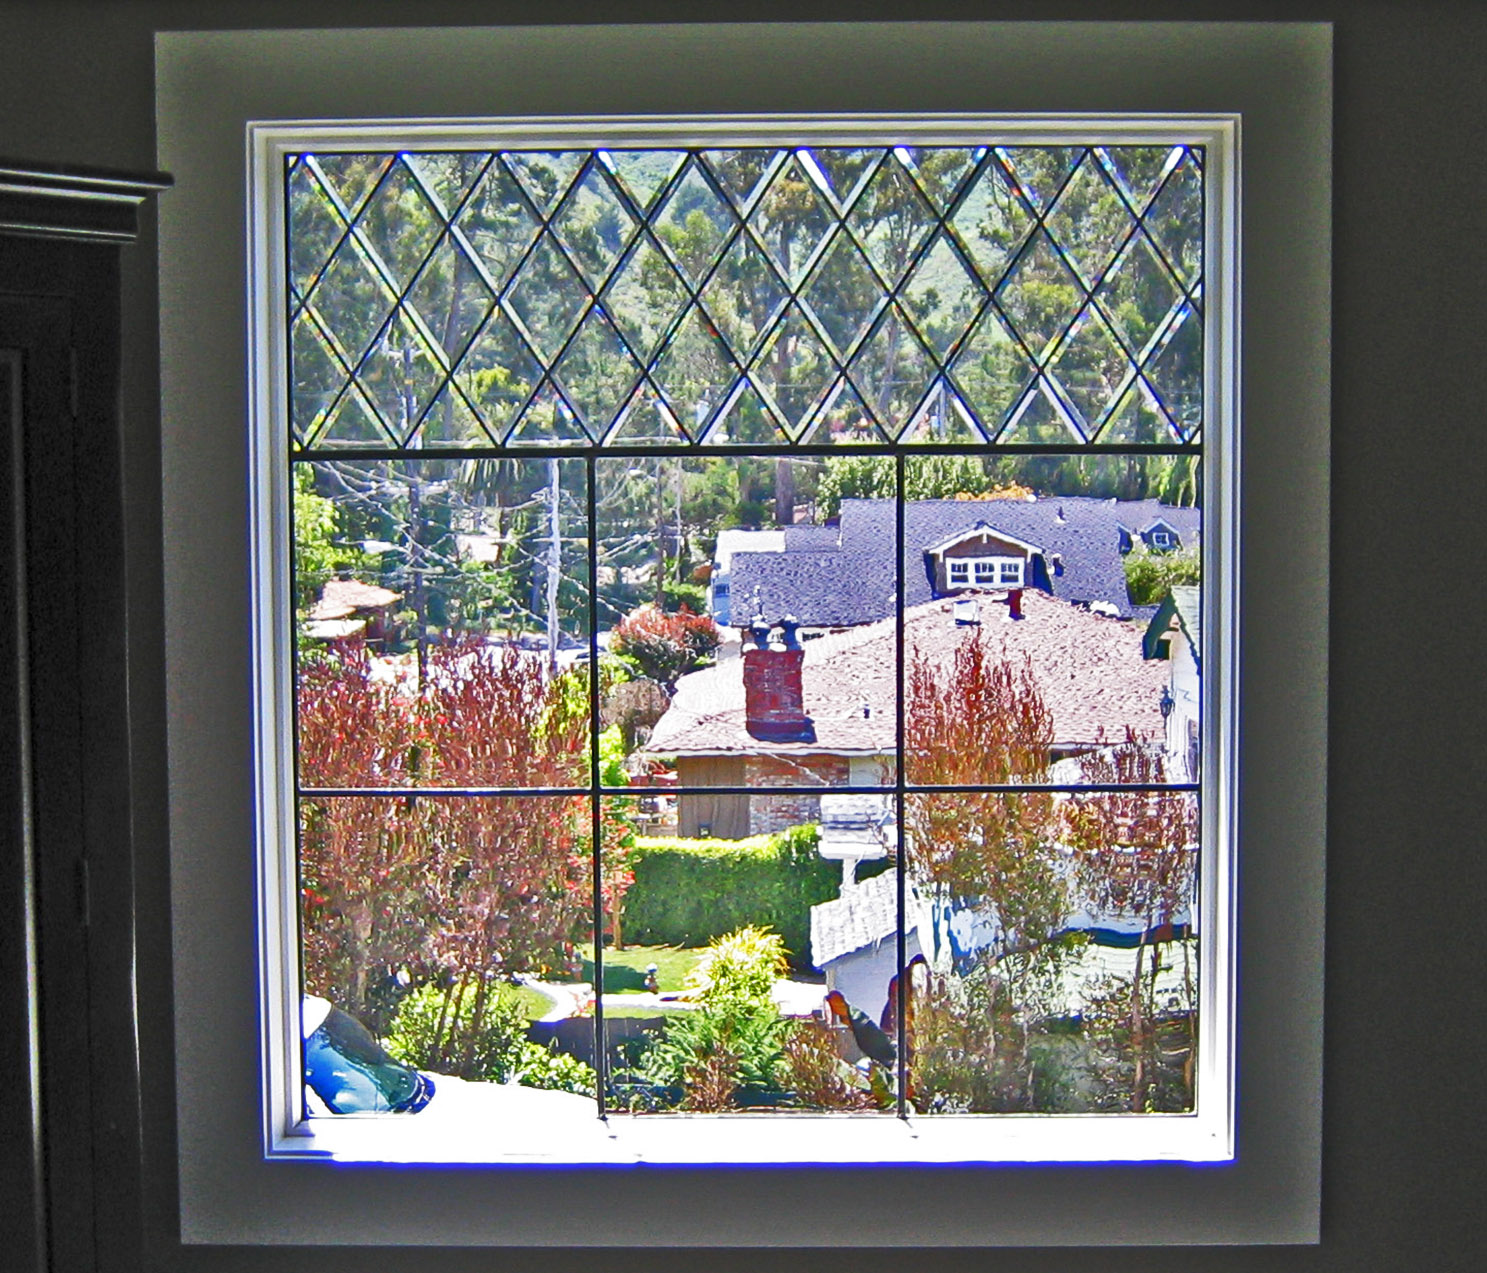 bevel diamond clear texture leaded glass stained glass window palo alto atherton california san francisco san jose legacy glass.jpg